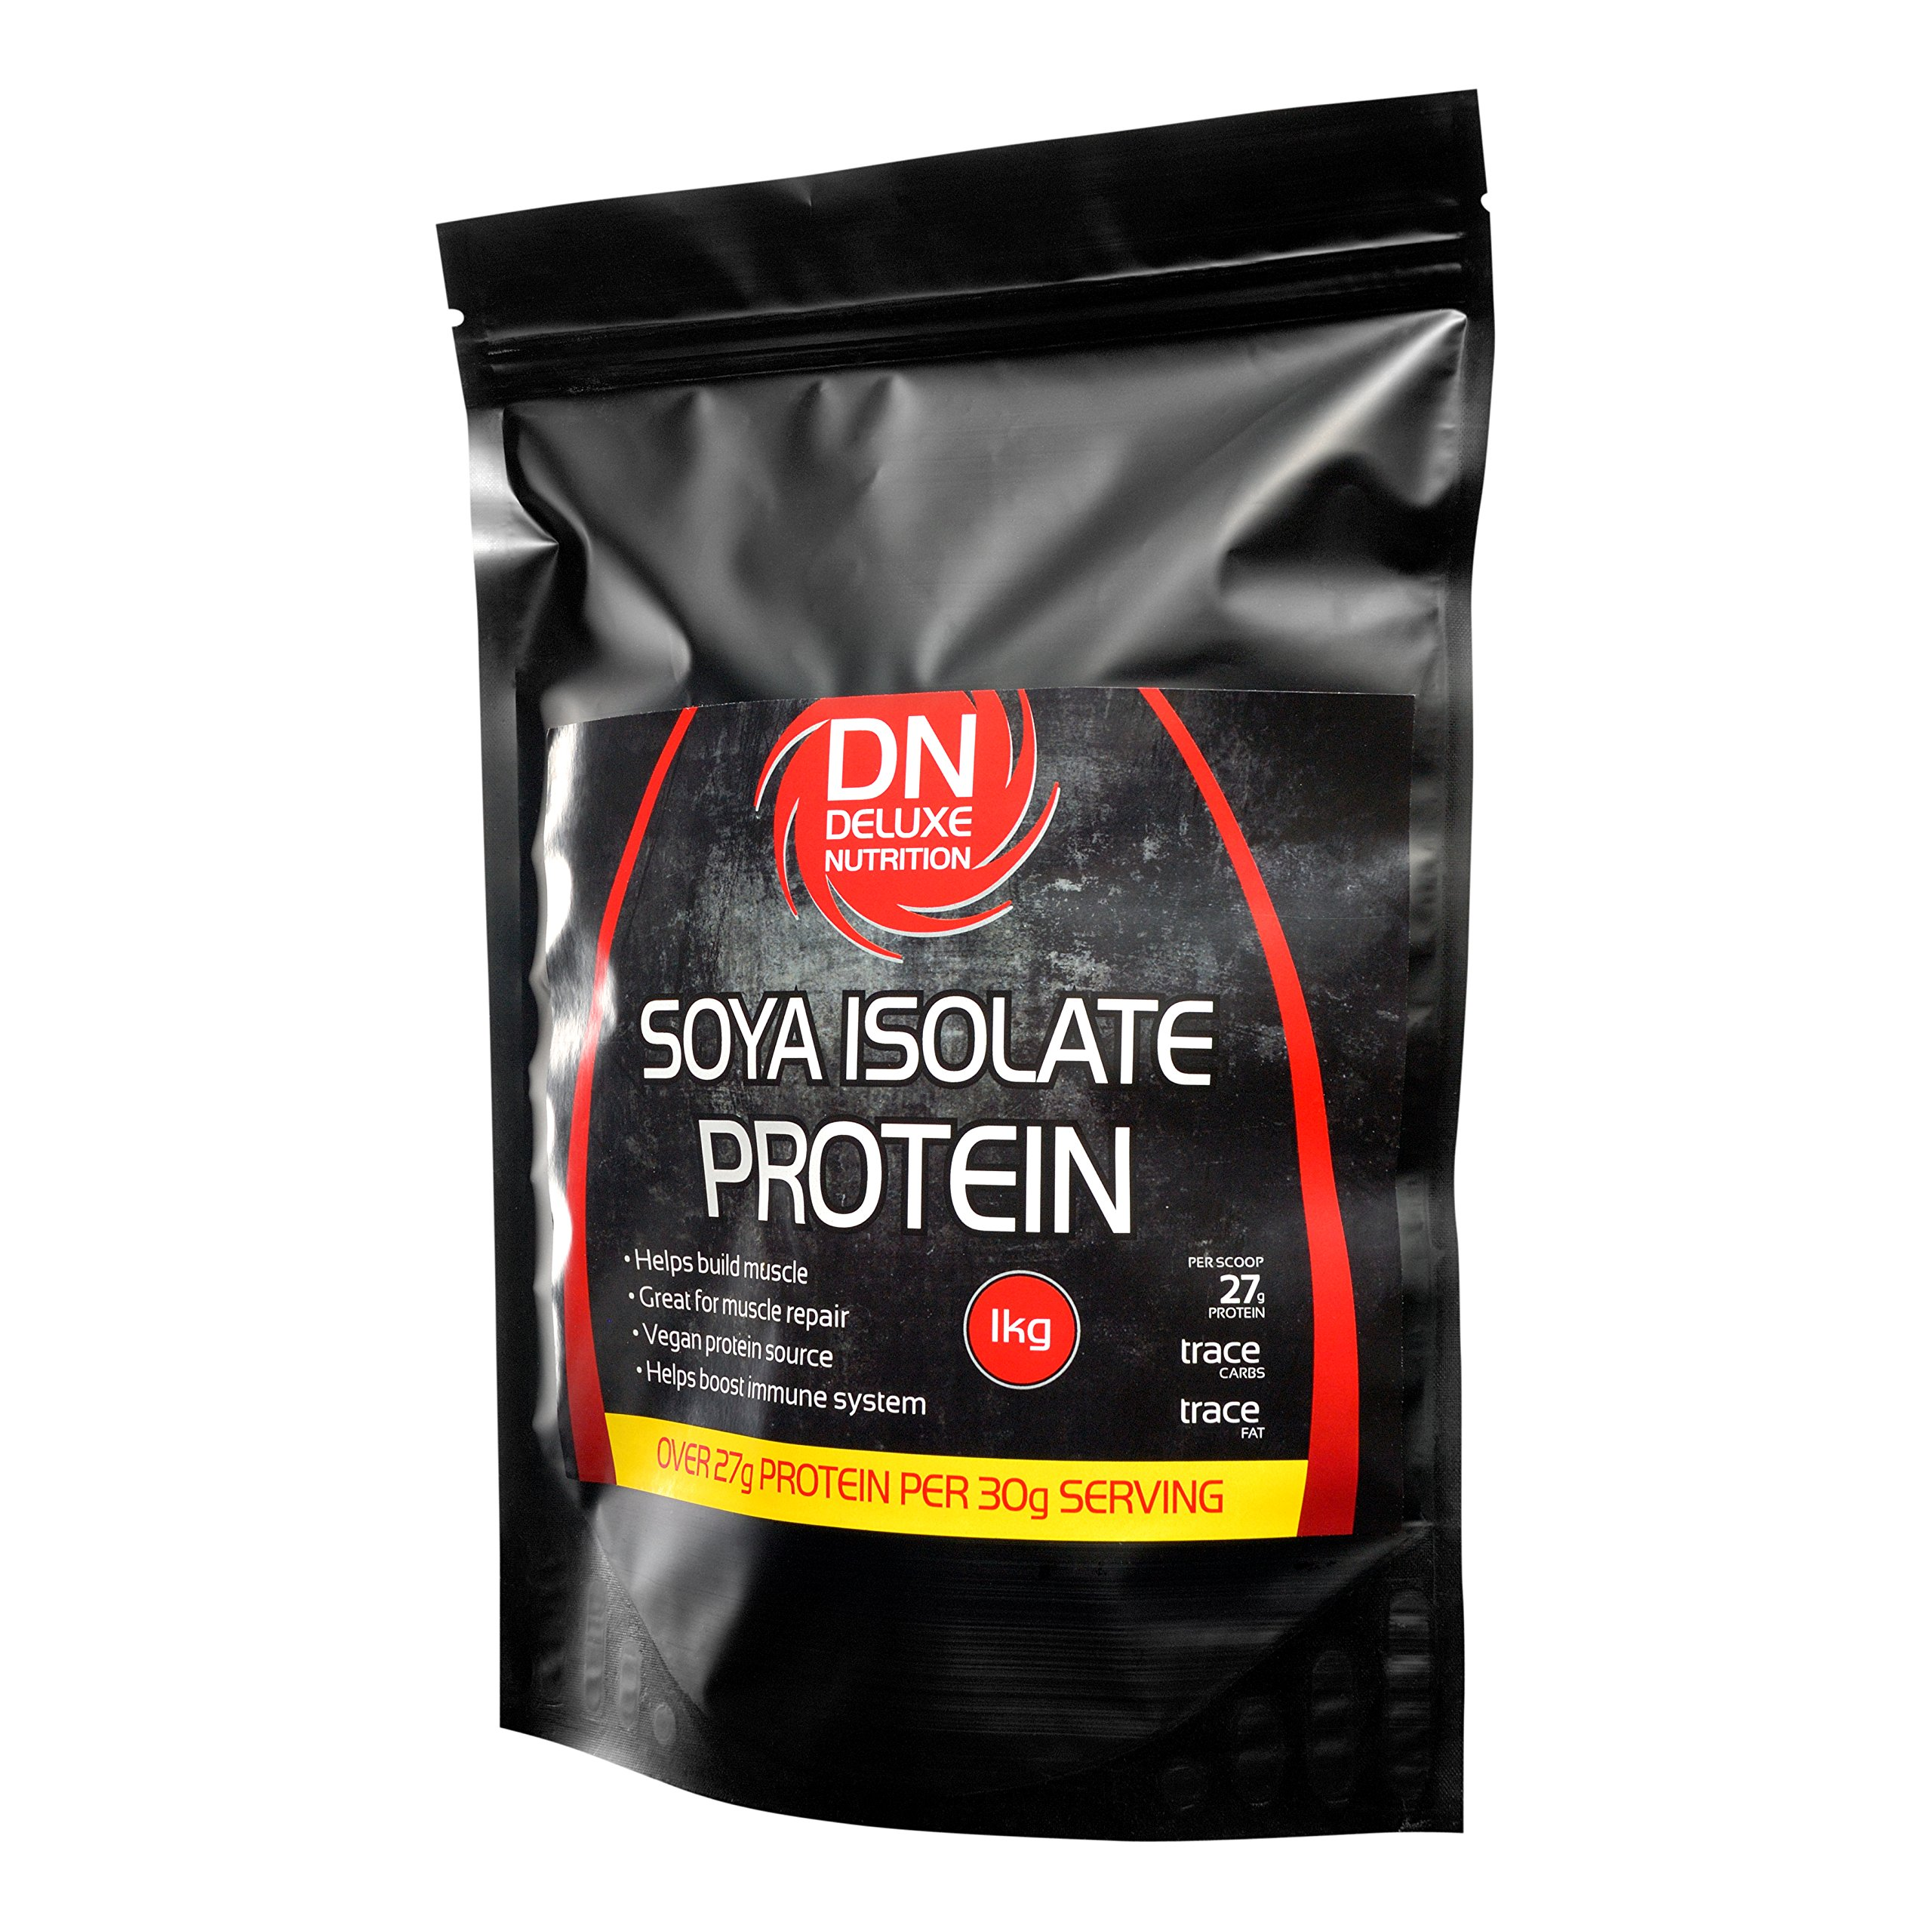 Deluxe Nutrition 1Kg Unflavoured Soya Protein Isolate Powder